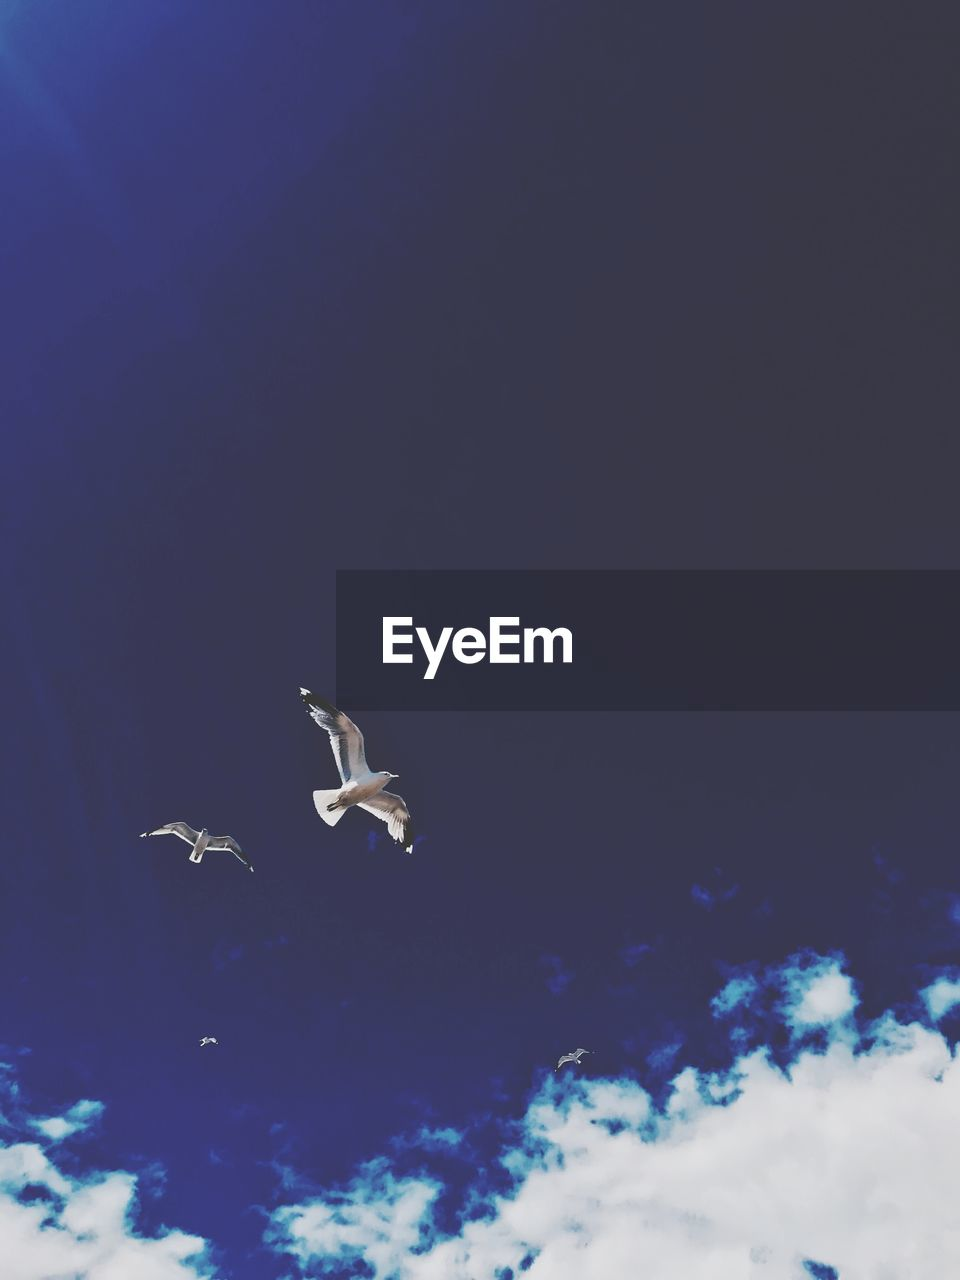 animal wildlife, animals in the wild, animal themes, animal, vertebrate, flying, bird, sky, low angle view, nature, spread wings, mid-air, no people, cloud - sky, blue, one animal, copy space, seagull, day, marine